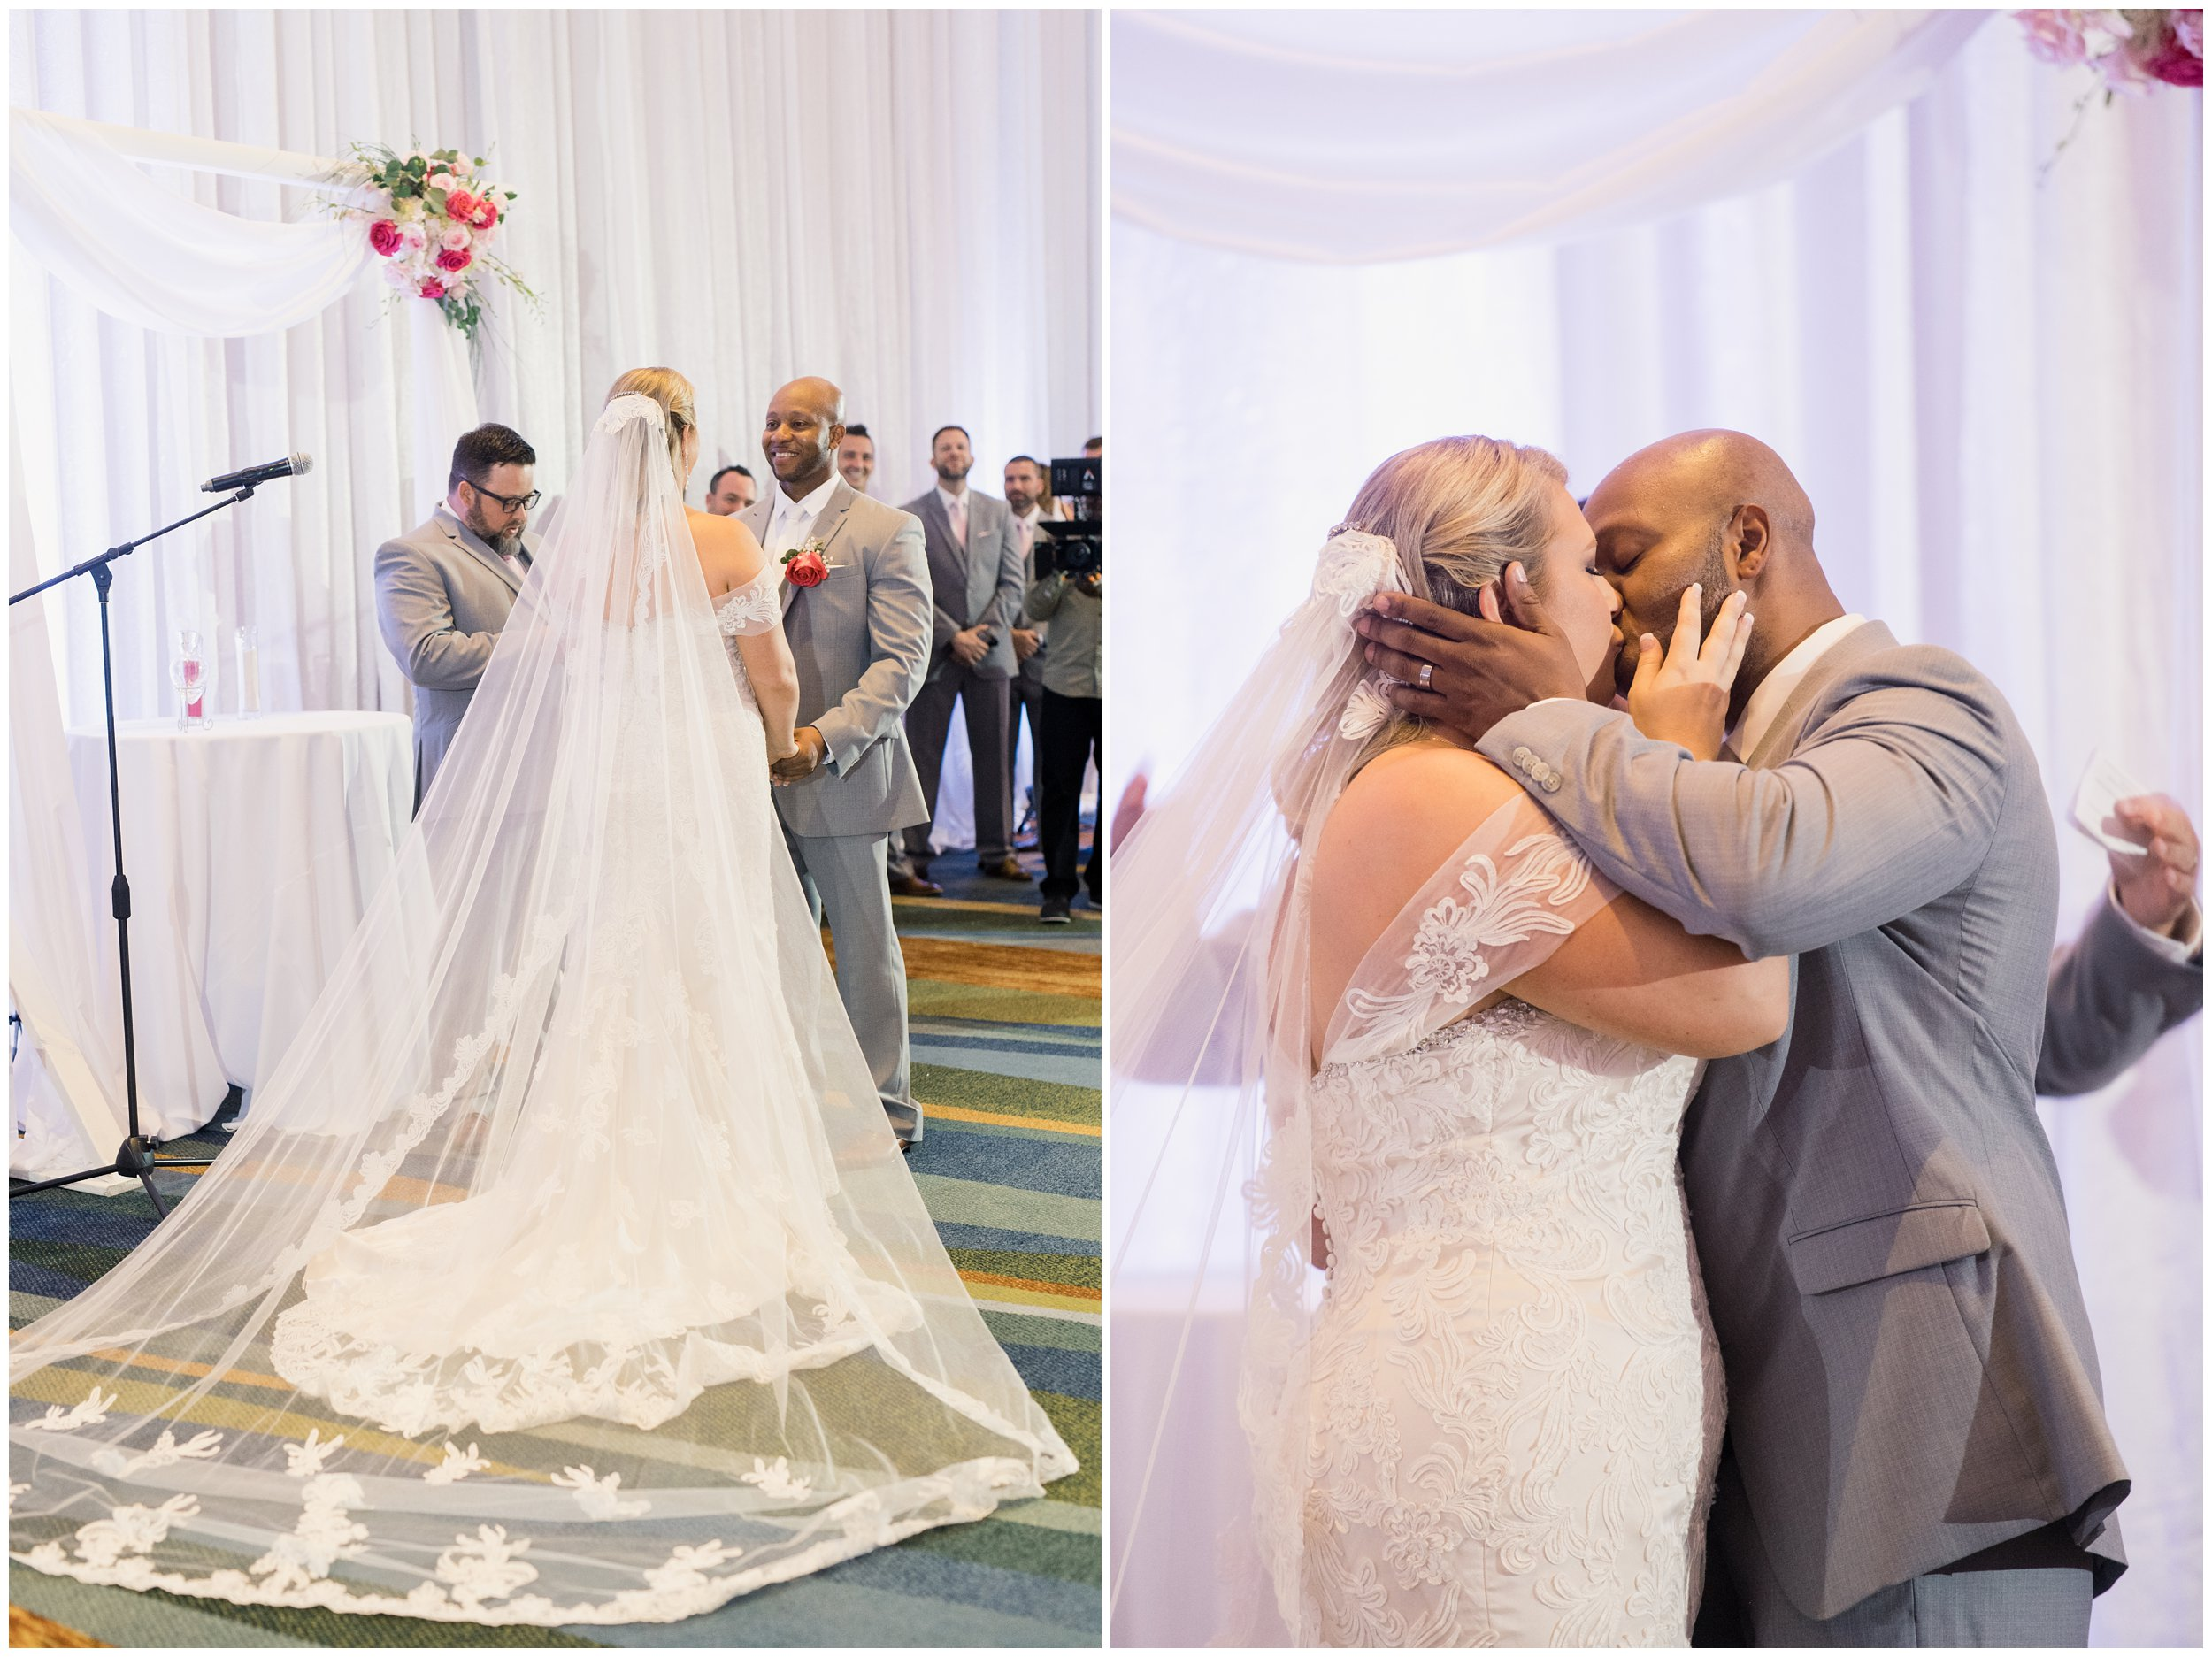 Hyatt Regency Chesapeake Bay wedding details